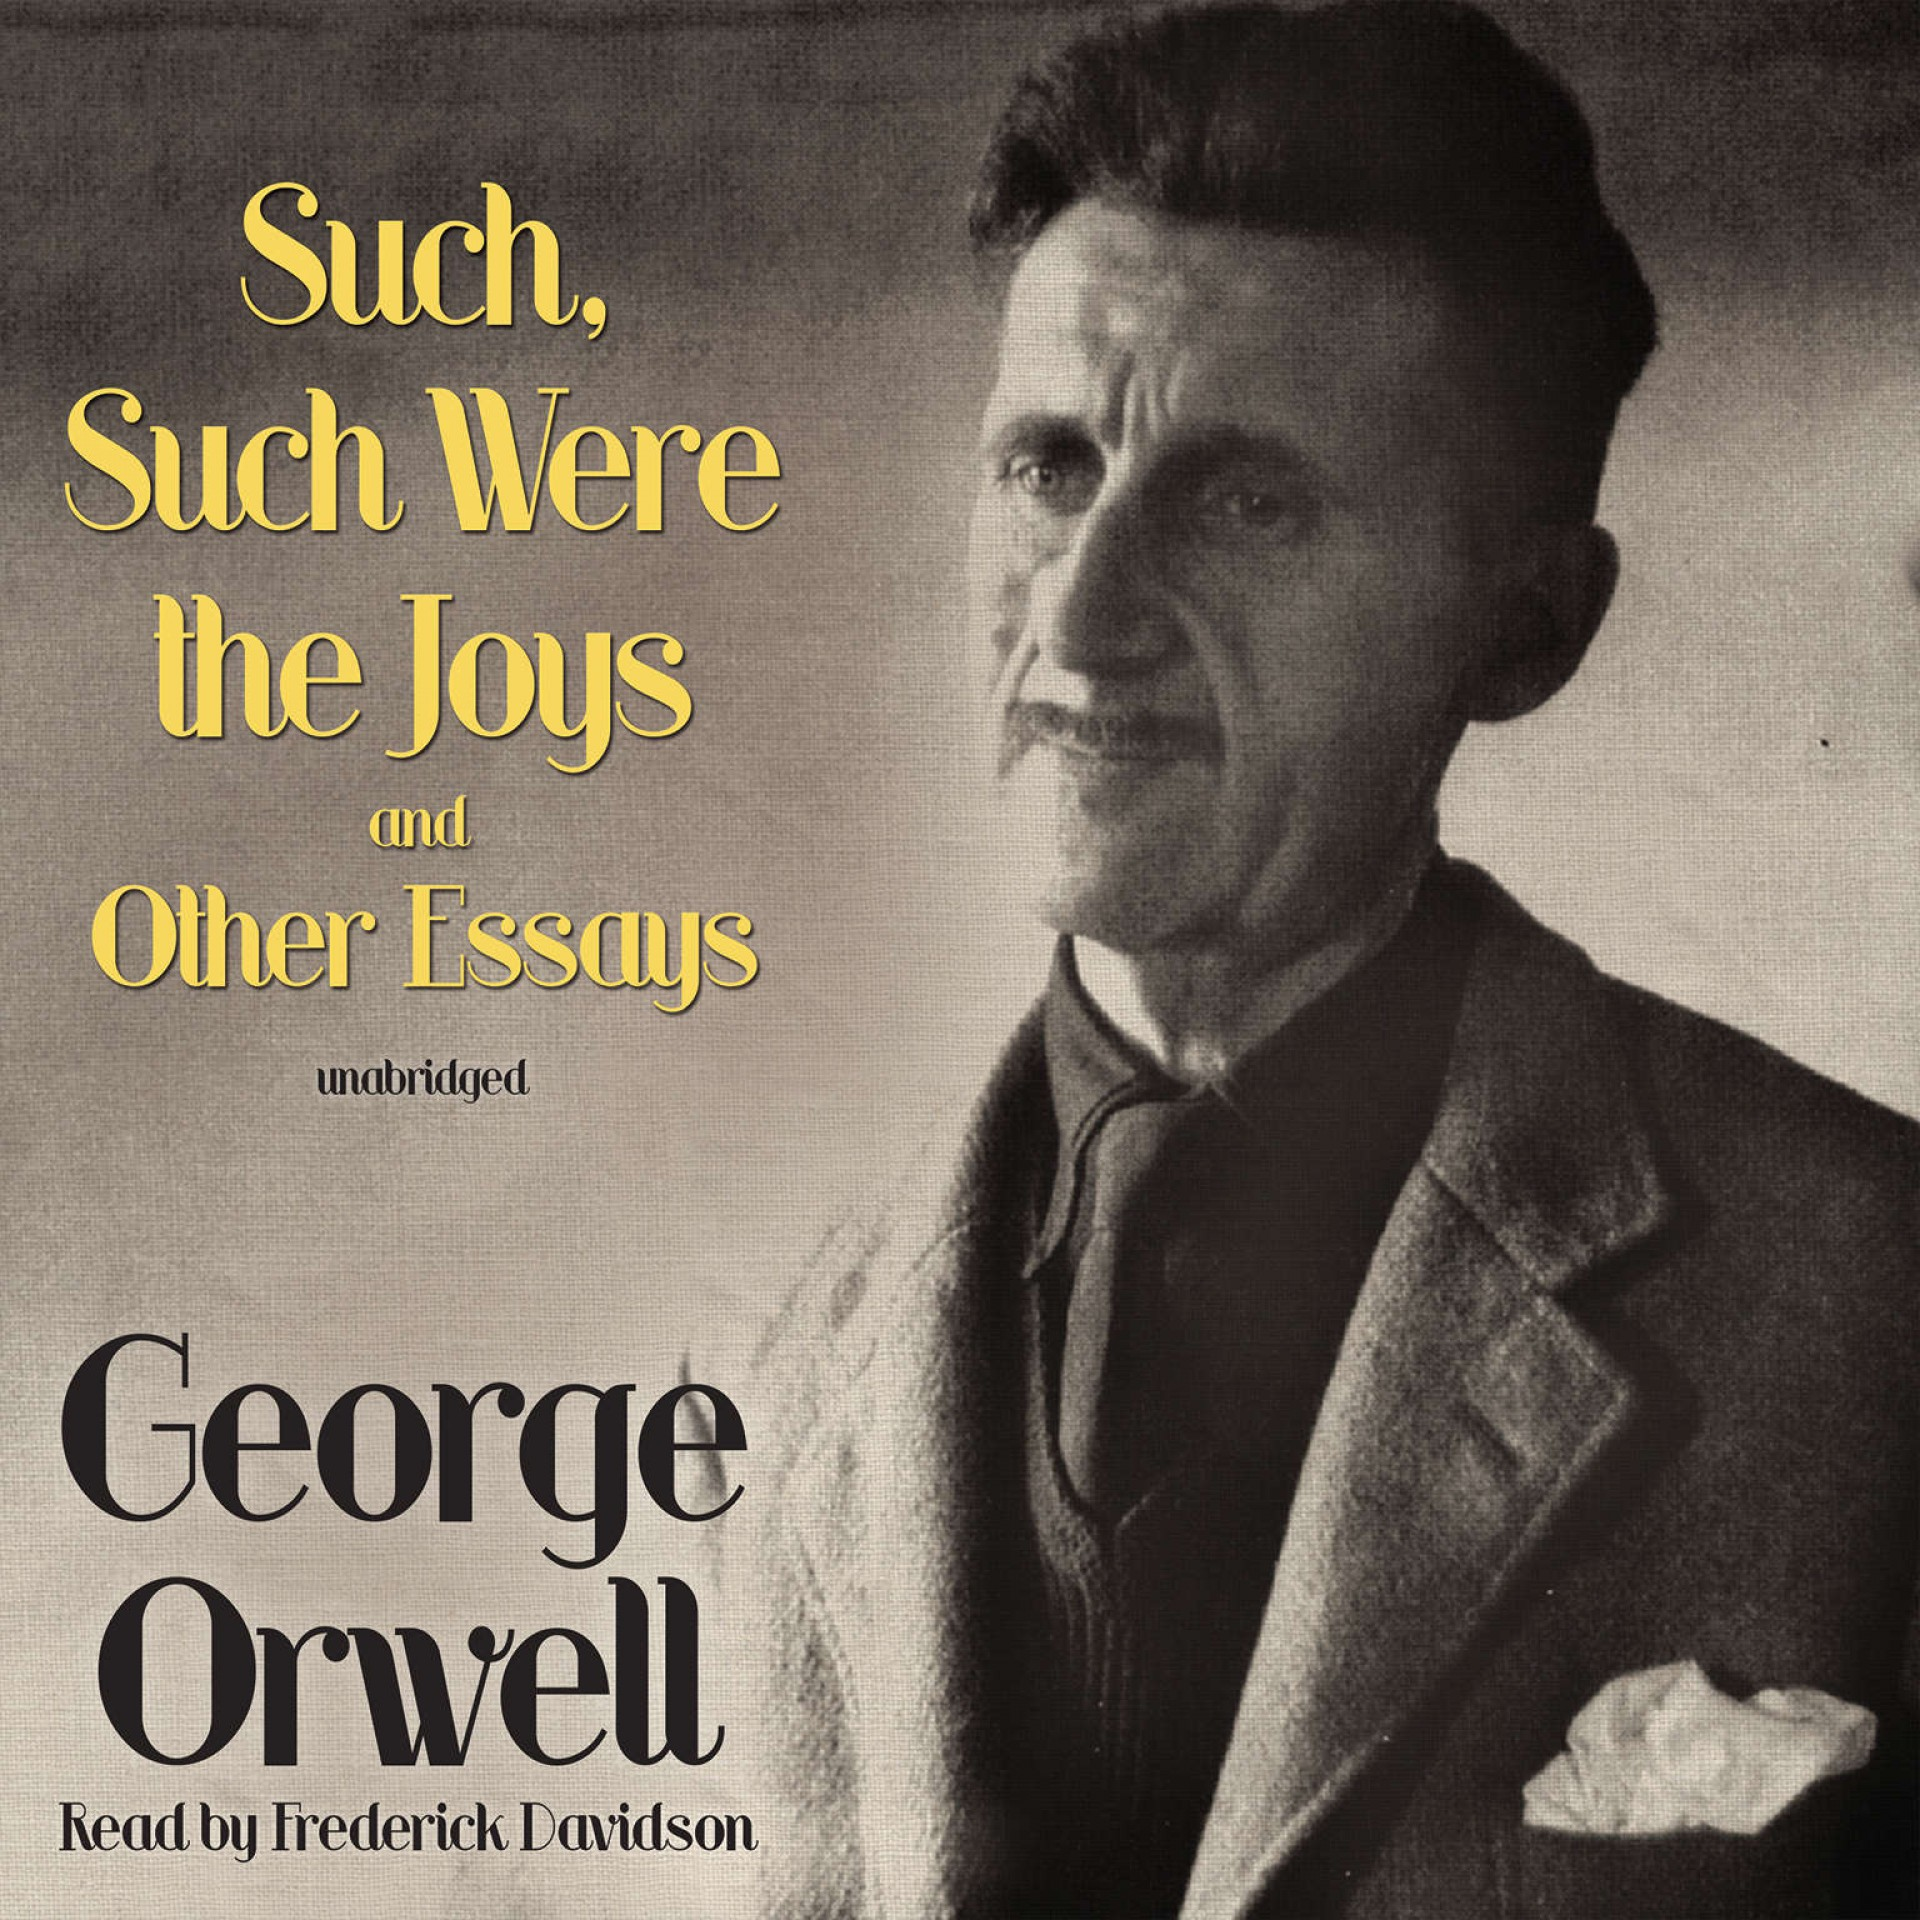 008 Square Essay Example George Orwell Frightening Essays 1984 Summary Collected Pdf On Writing 1920